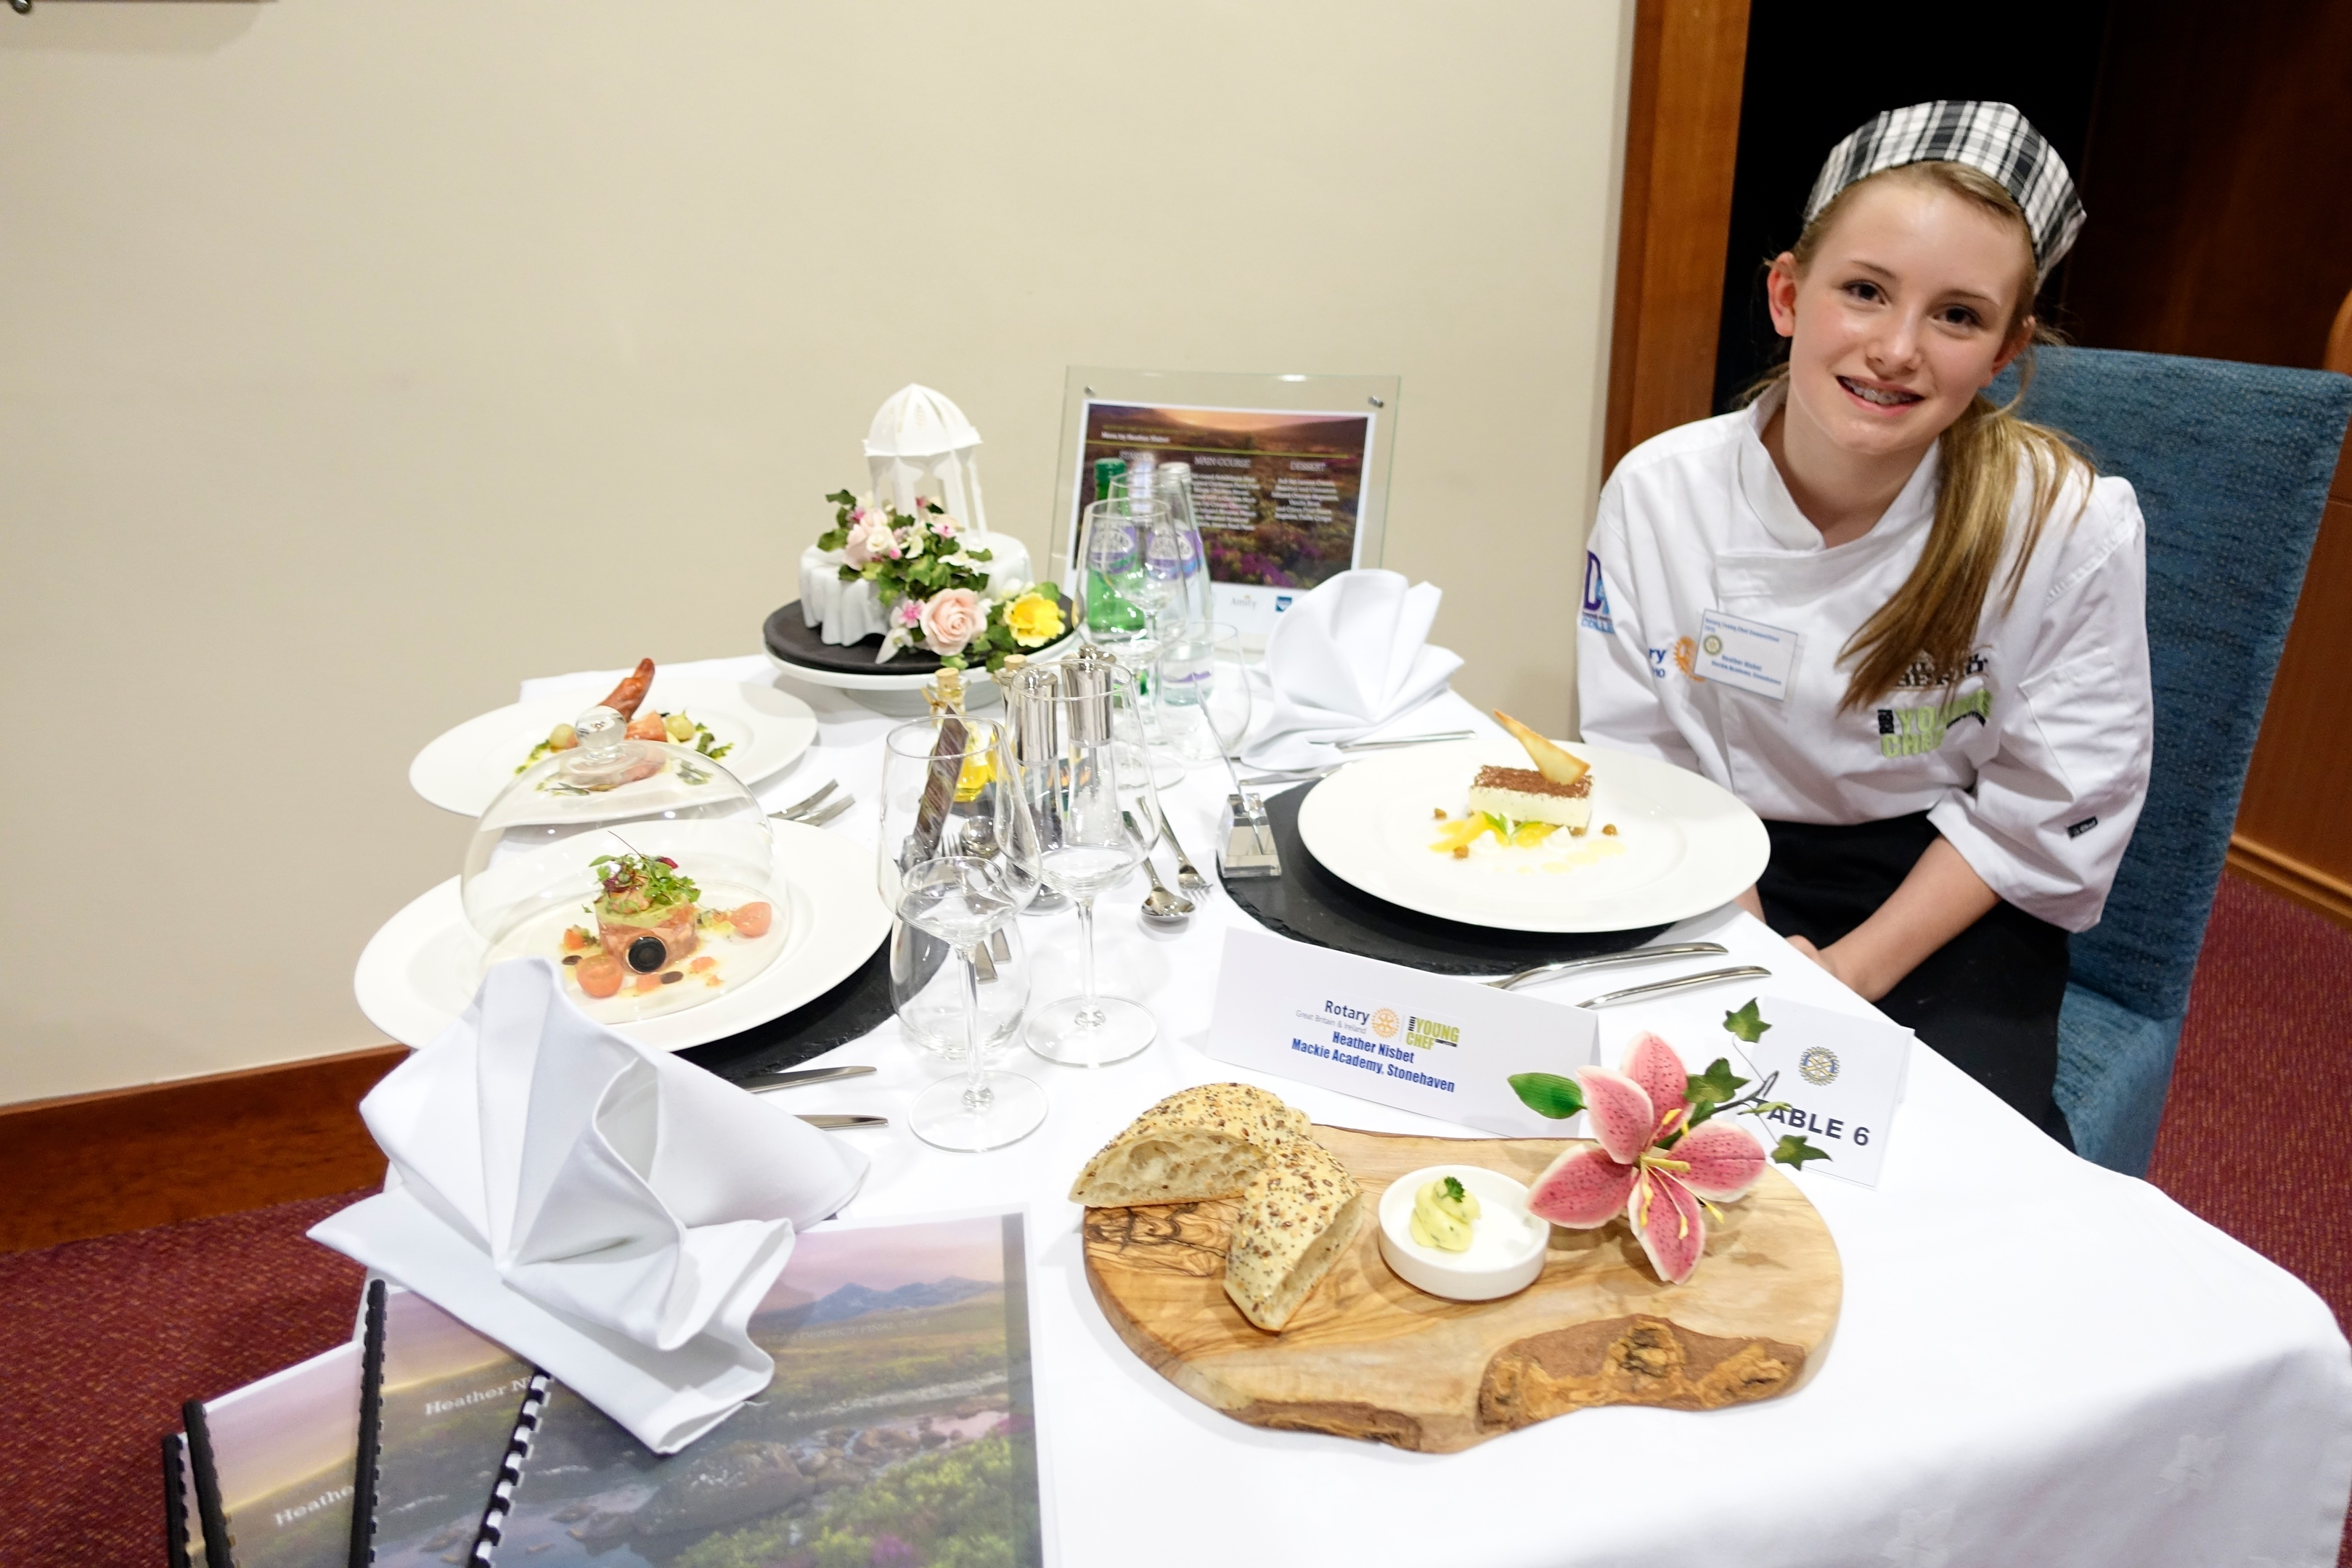 Thirteen-year-old Mackie Academy pupil, Heather Nisbet, has been crowed culinary champion of a regional heat of the Rotary International in Great Britain and Ireland (RIBI)'s Young Chef of The Year awards.